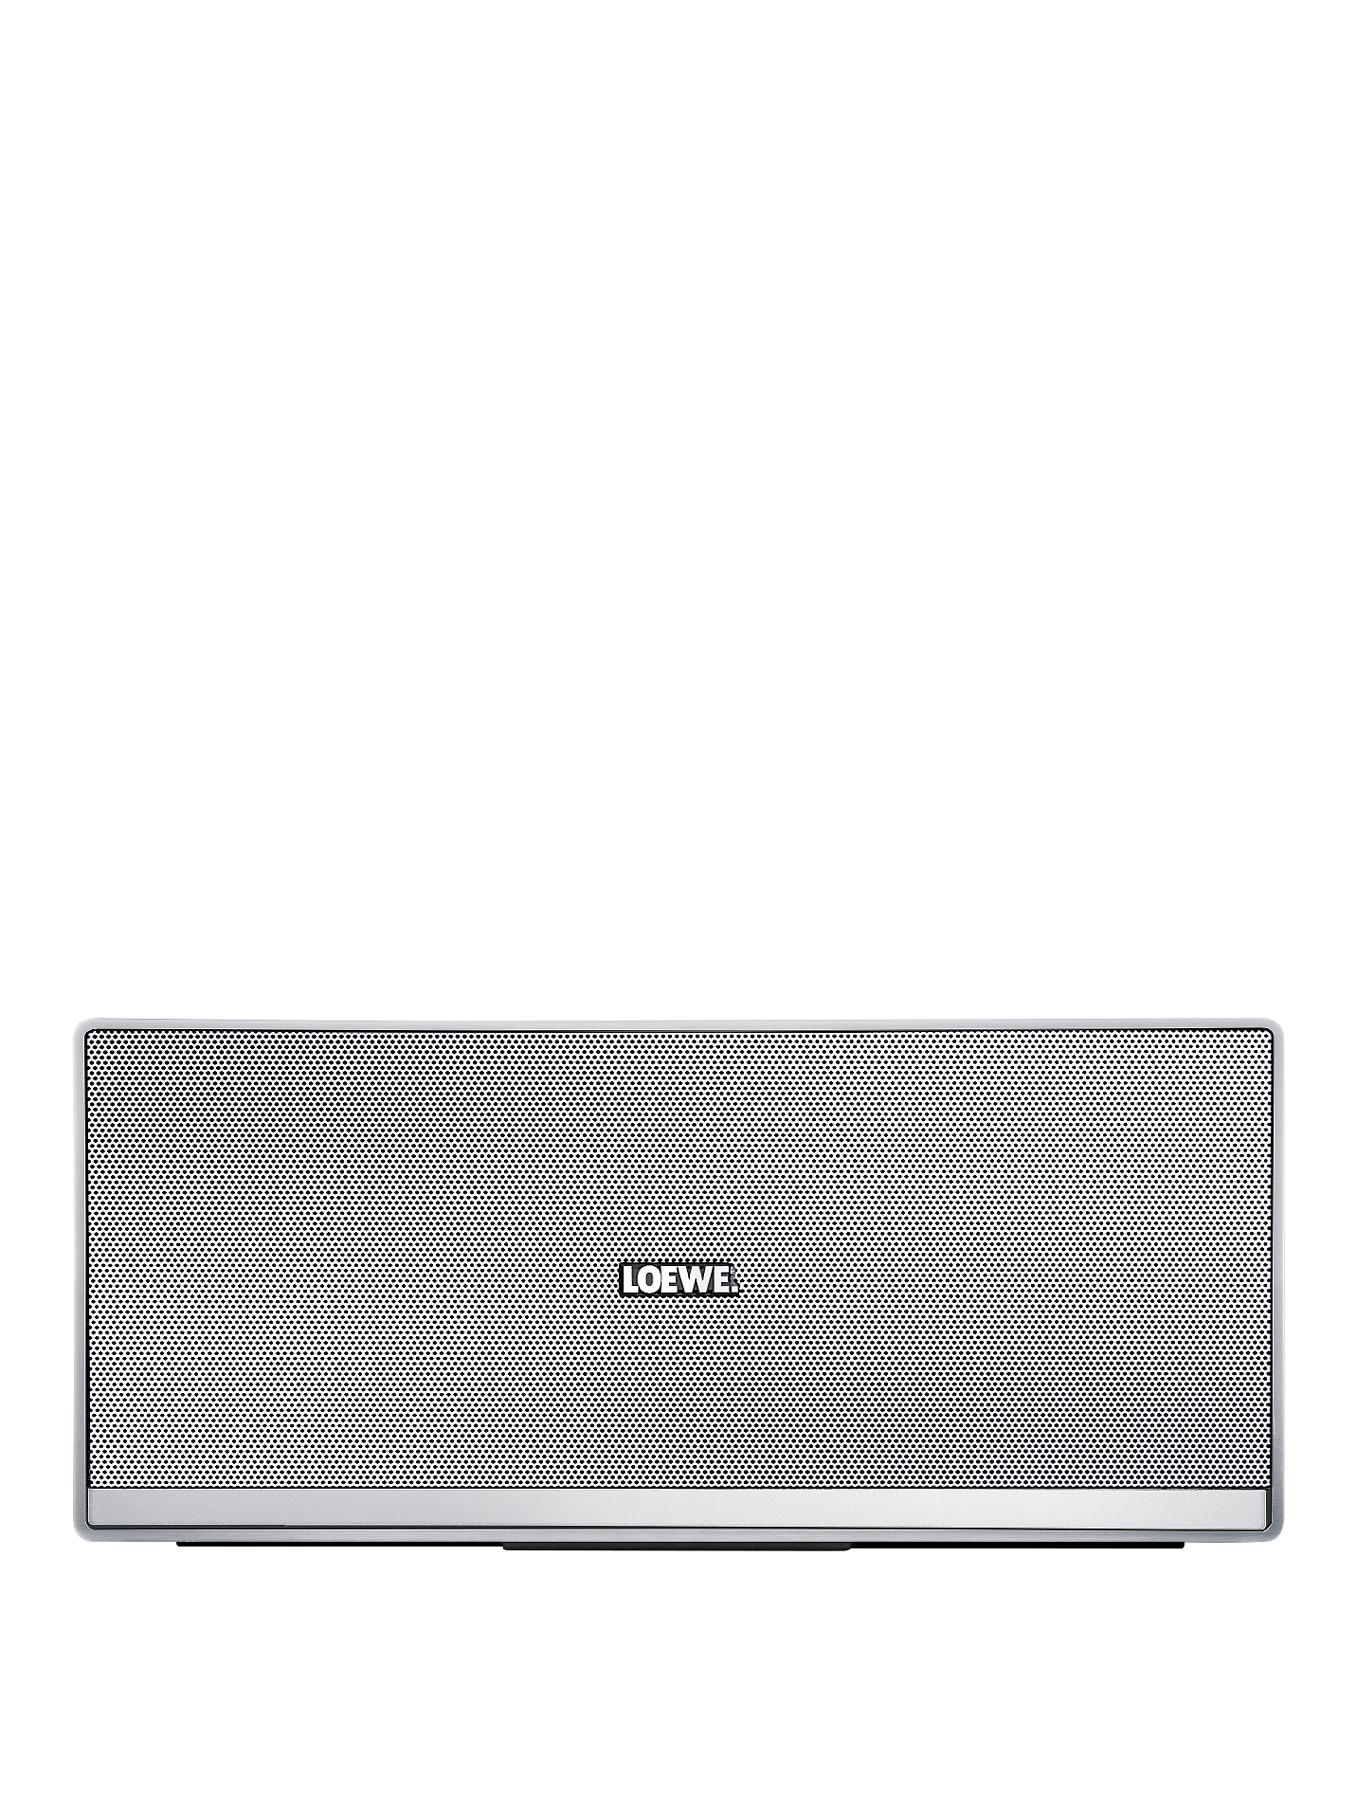 LOEWE Speaker 2go Aluminium Portable Bluetooth Speaker with NFC - Silver